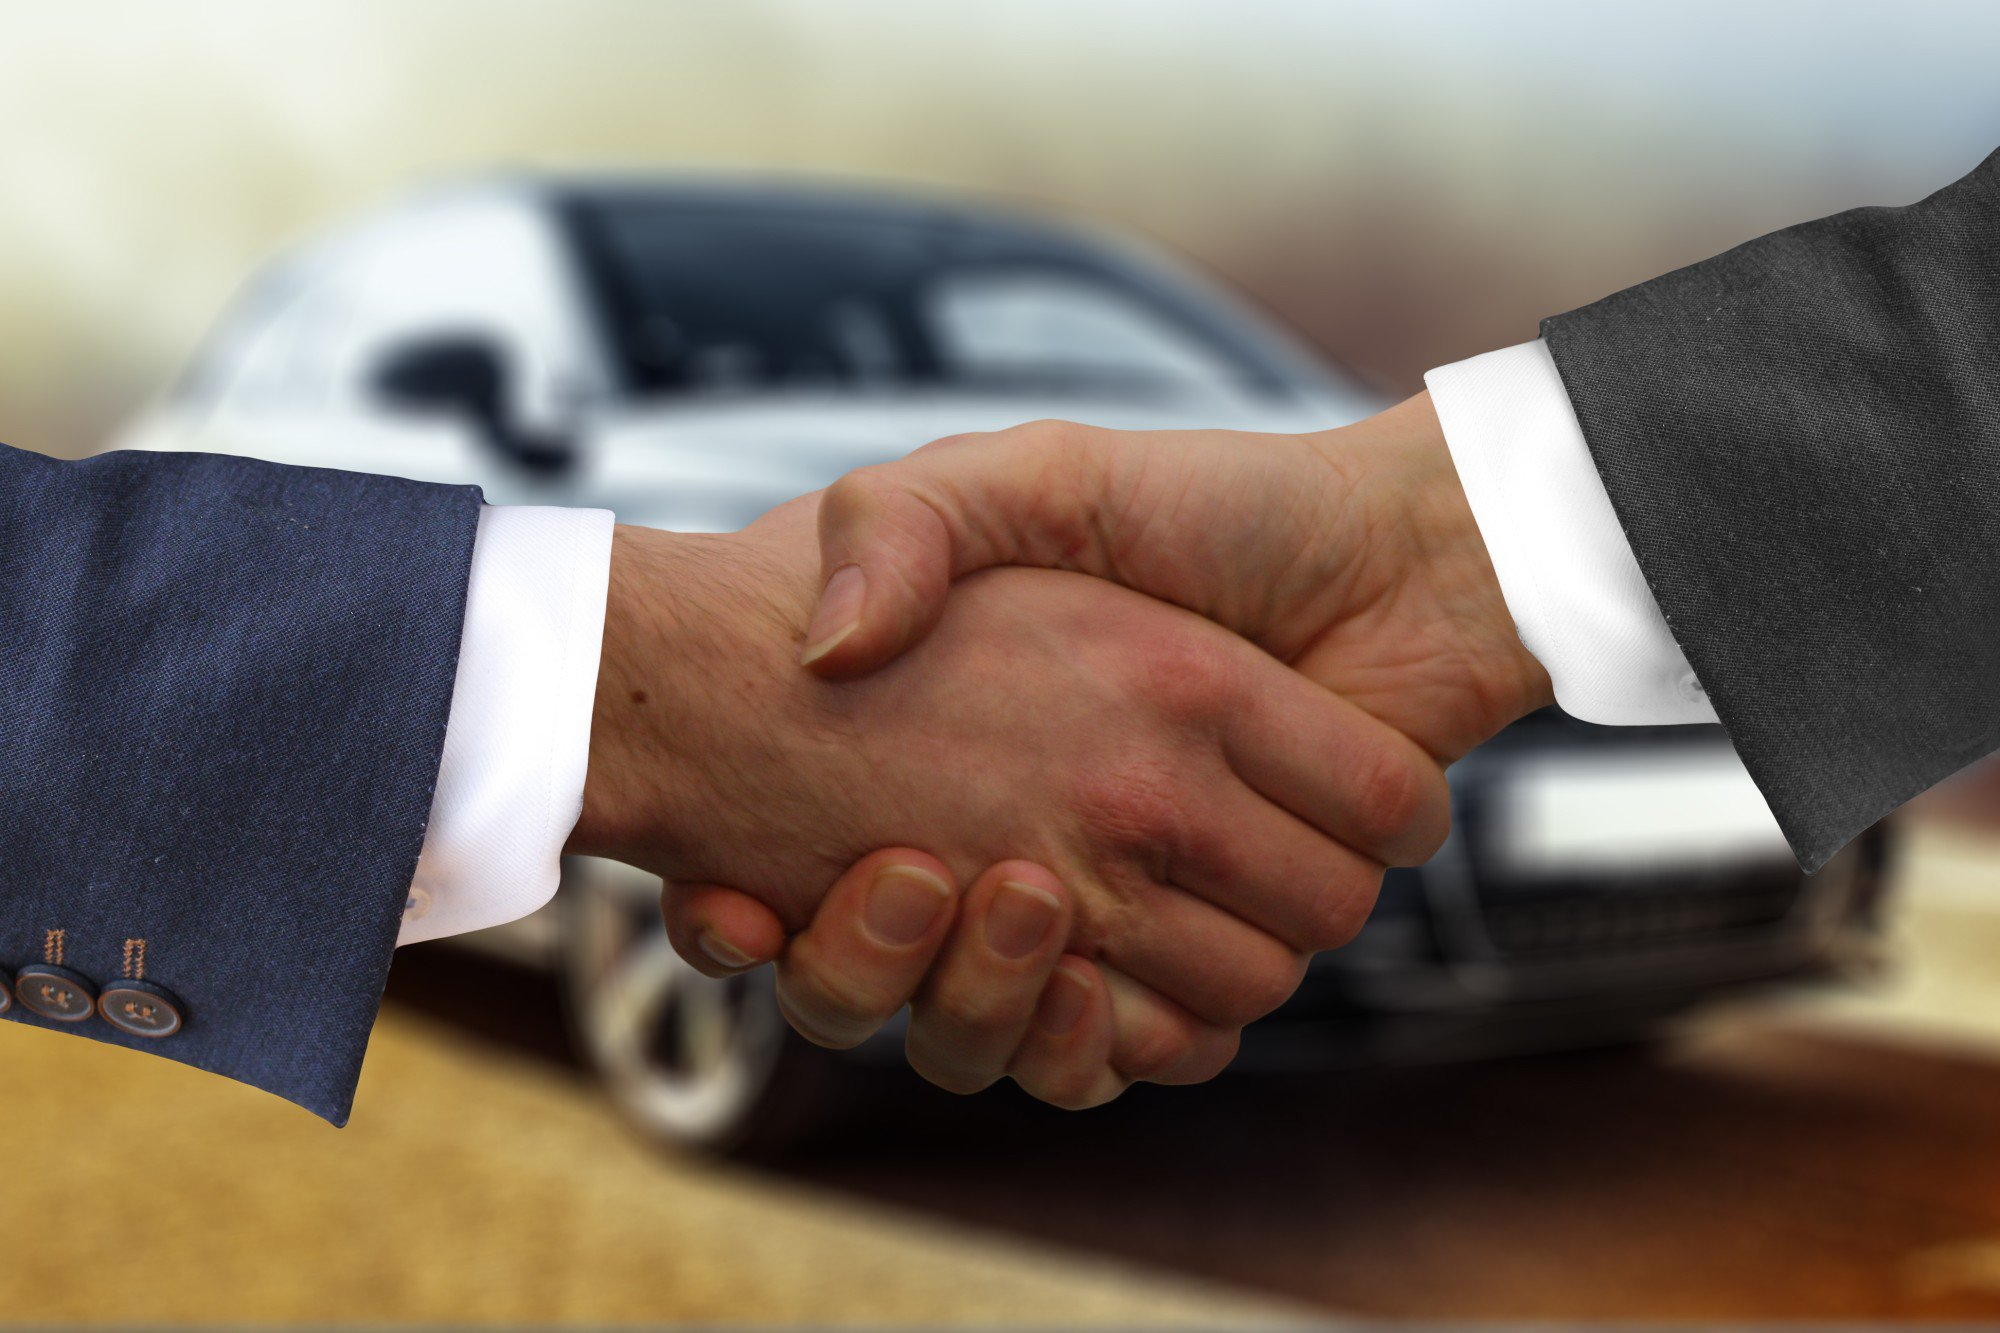 negotiating used car prices